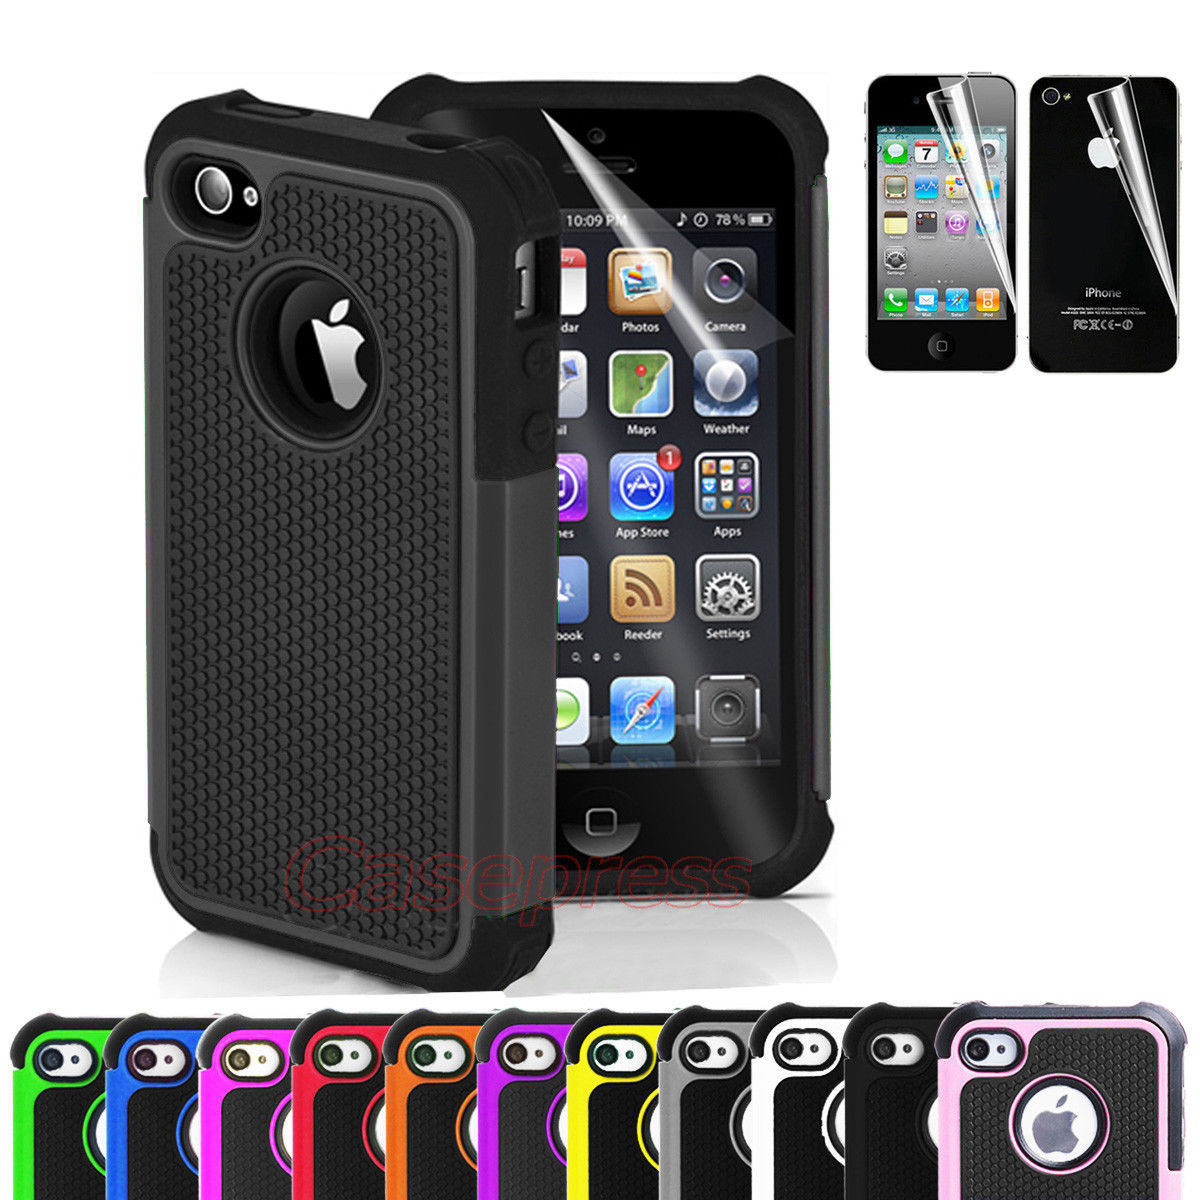 4s iphone case for iphone 4 4s black rugged rubber matte 1149